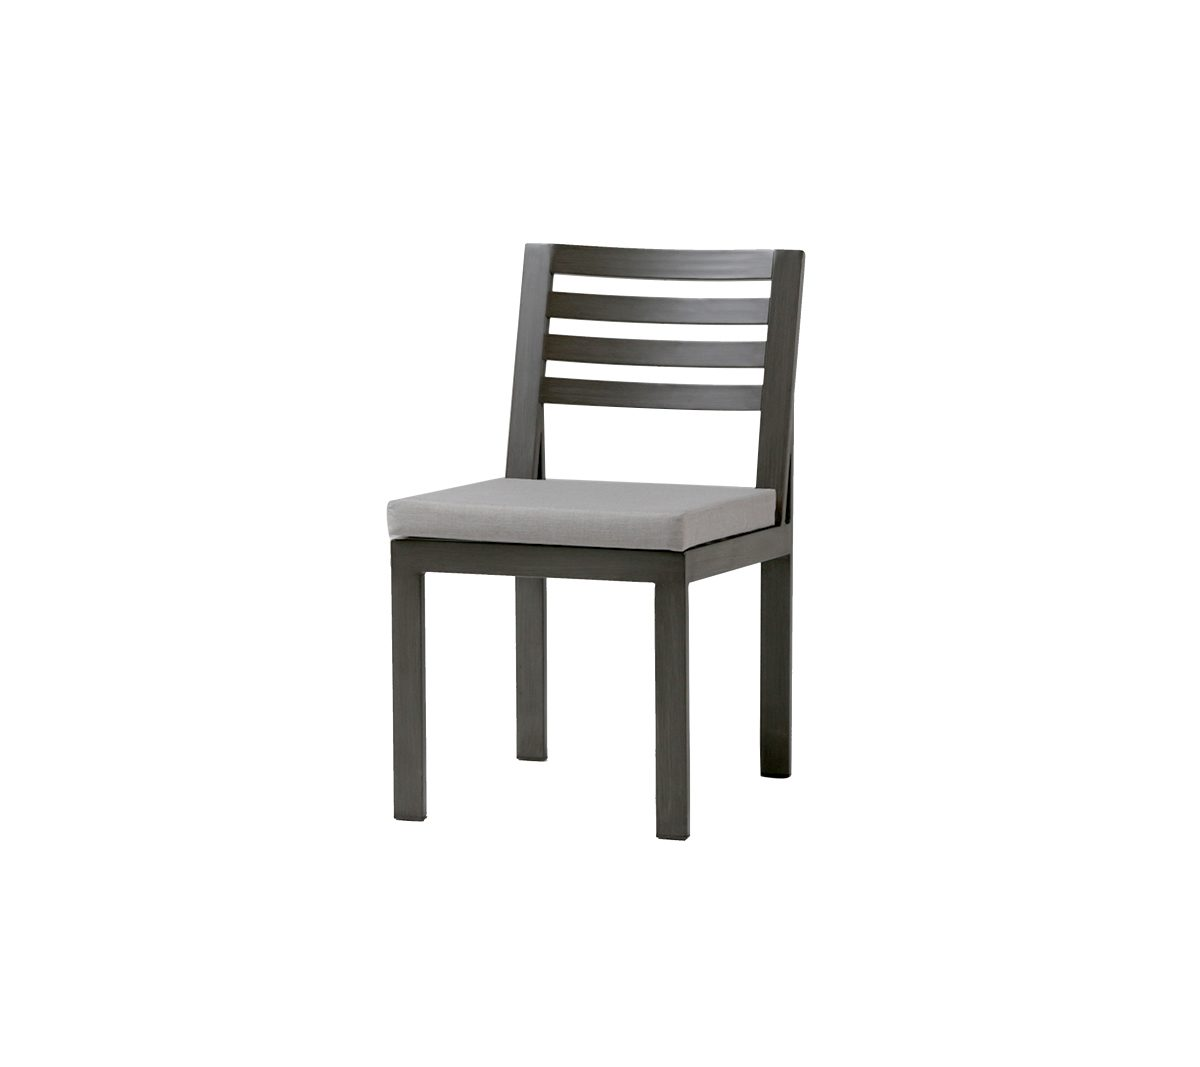 Element dining side chair in ash grey with cream seat cushion.